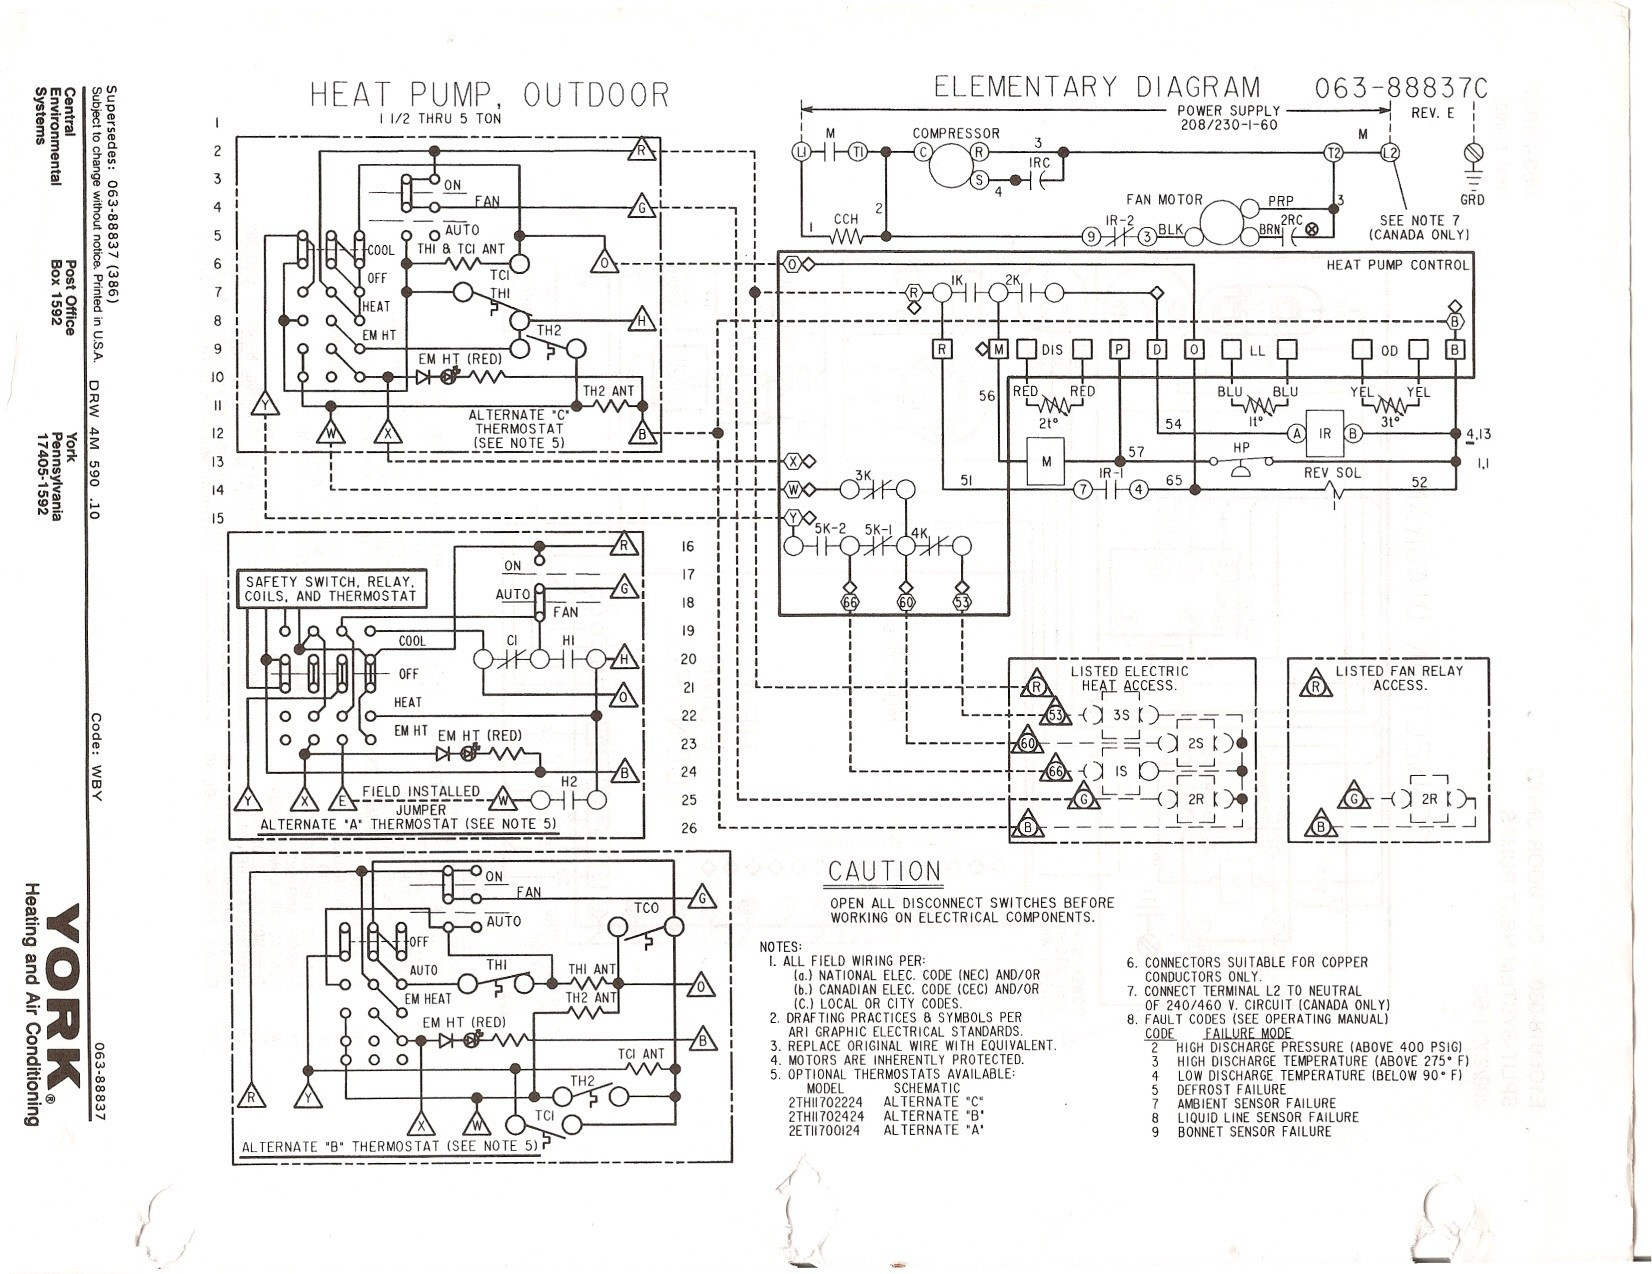 york heat pump thermostat wiring diagram Collection-Goodman Heat Pump Thermostat Wiring Diagram New Generous York Air Handler Inspiration Strip 8 3-i